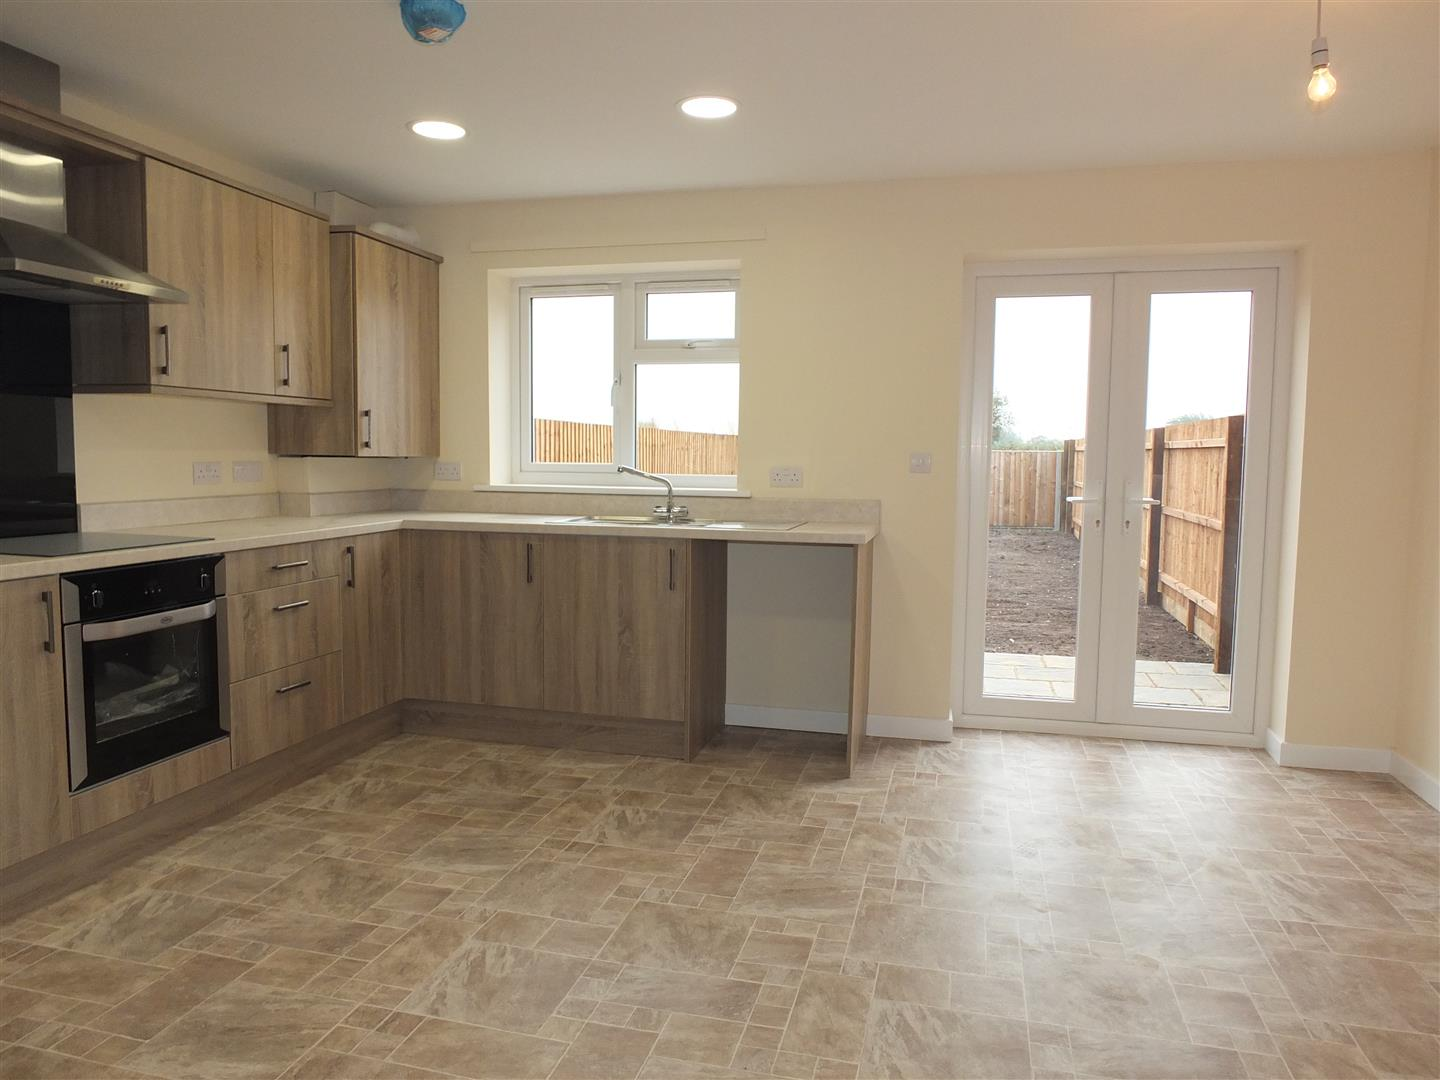 3 bed house to rent in Little London, Long Sutton 3